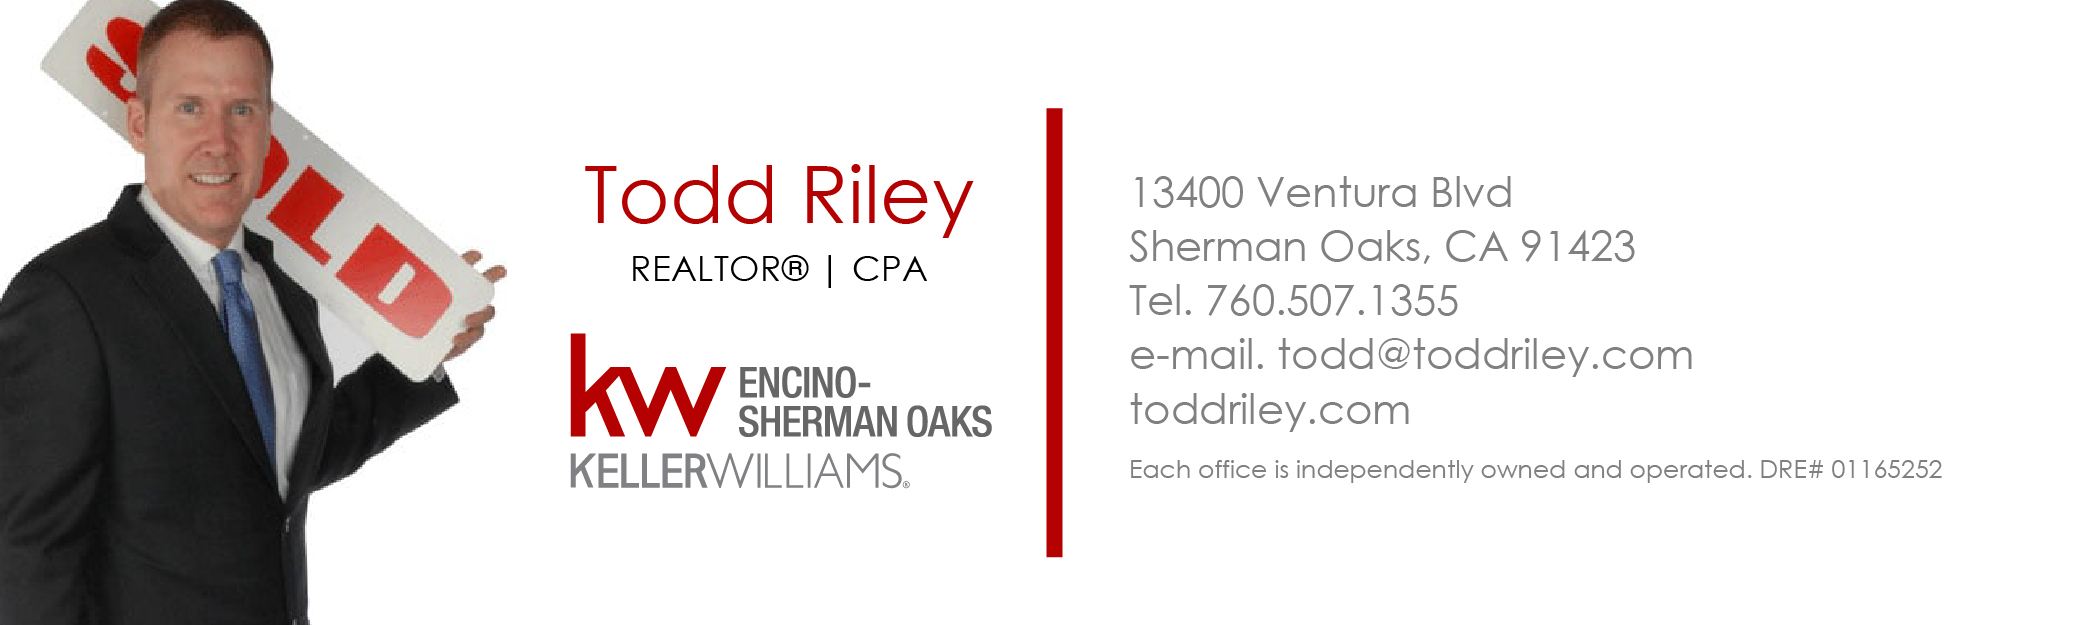 Todd Riley 55 Plus Desert Area Specialist